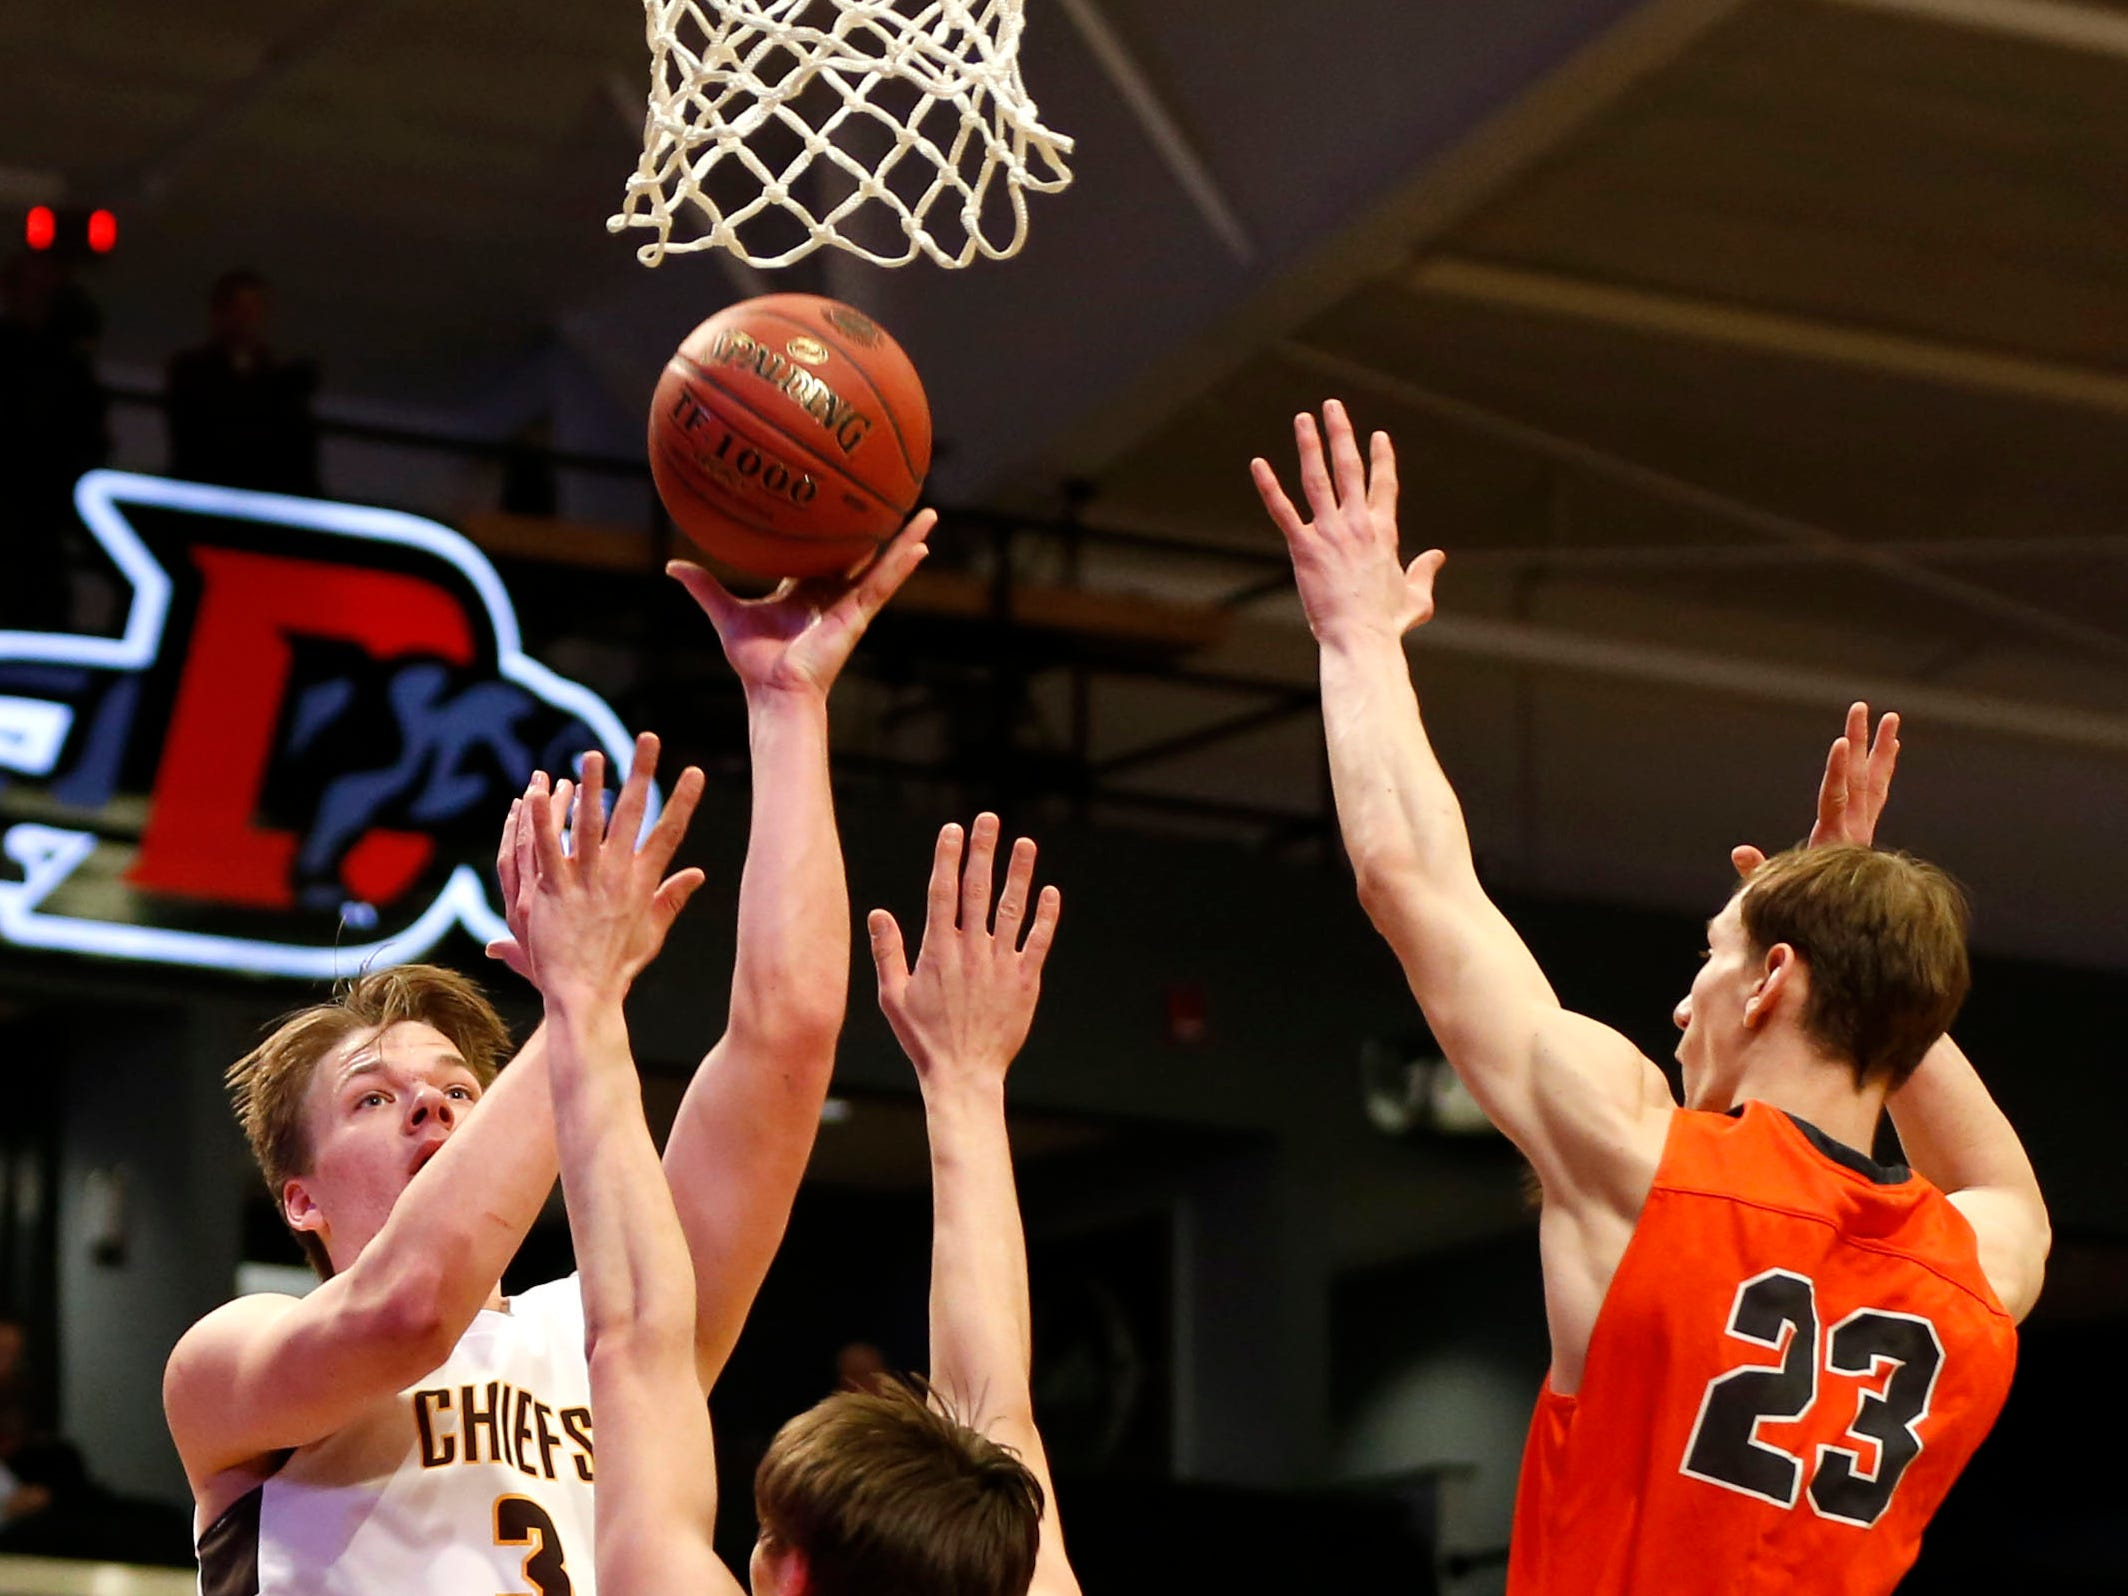 The Kickapoo Chiefs take on the Republic Tigers in Class 5 sectionals at the O'Reilly Family Event Center on Wednesday, March 6, 2019.